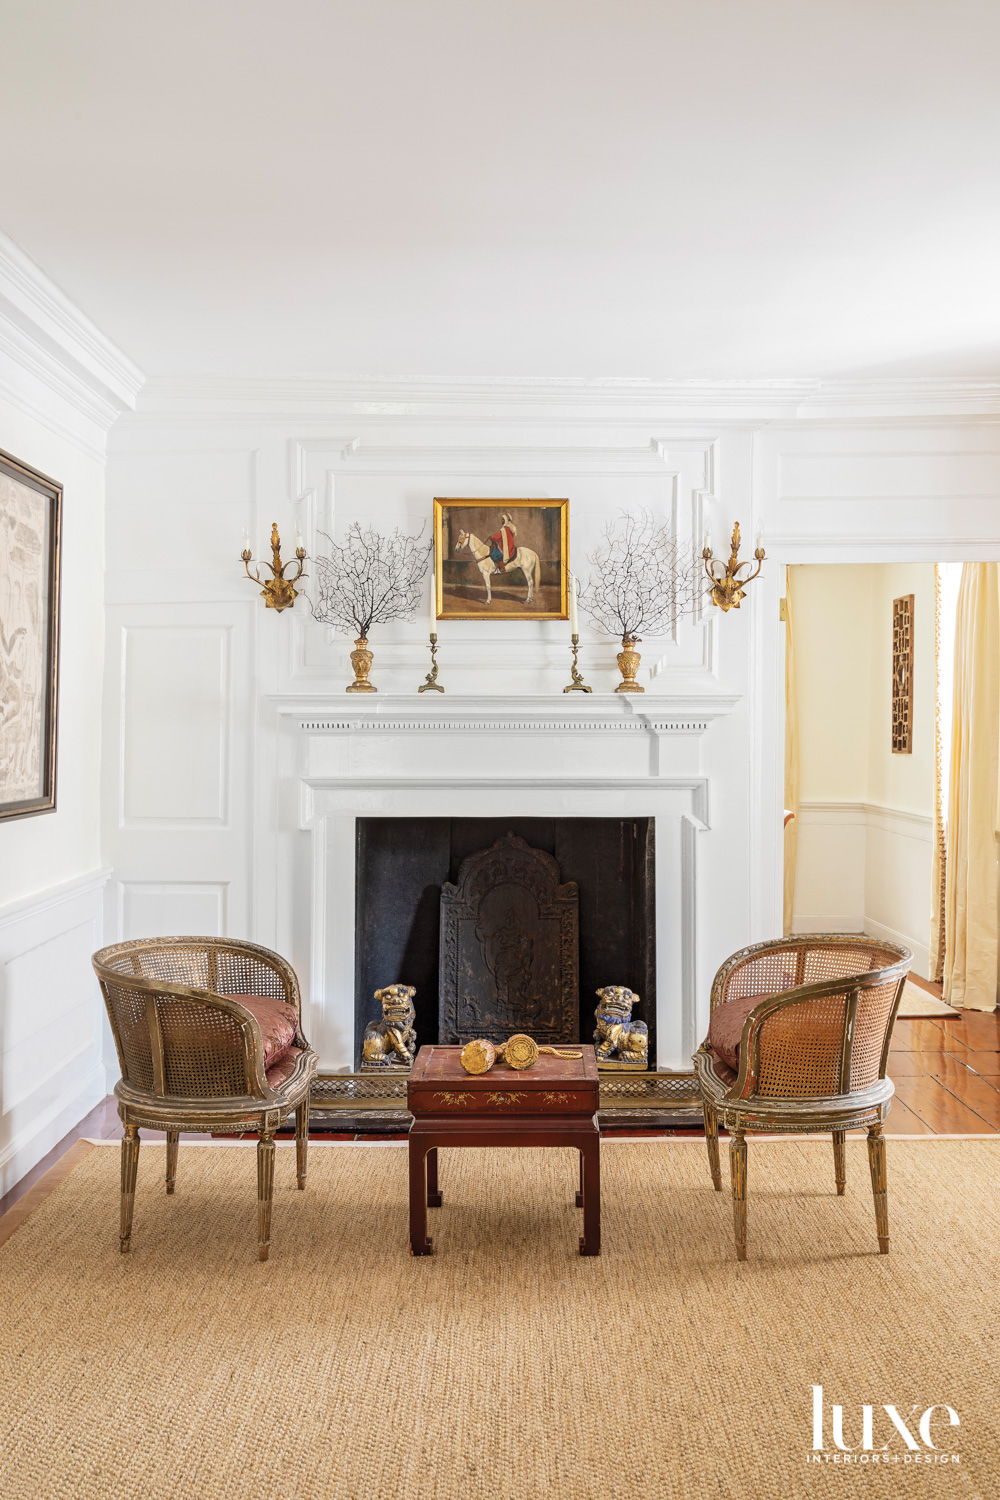 Fireplace with framed oil painting,...